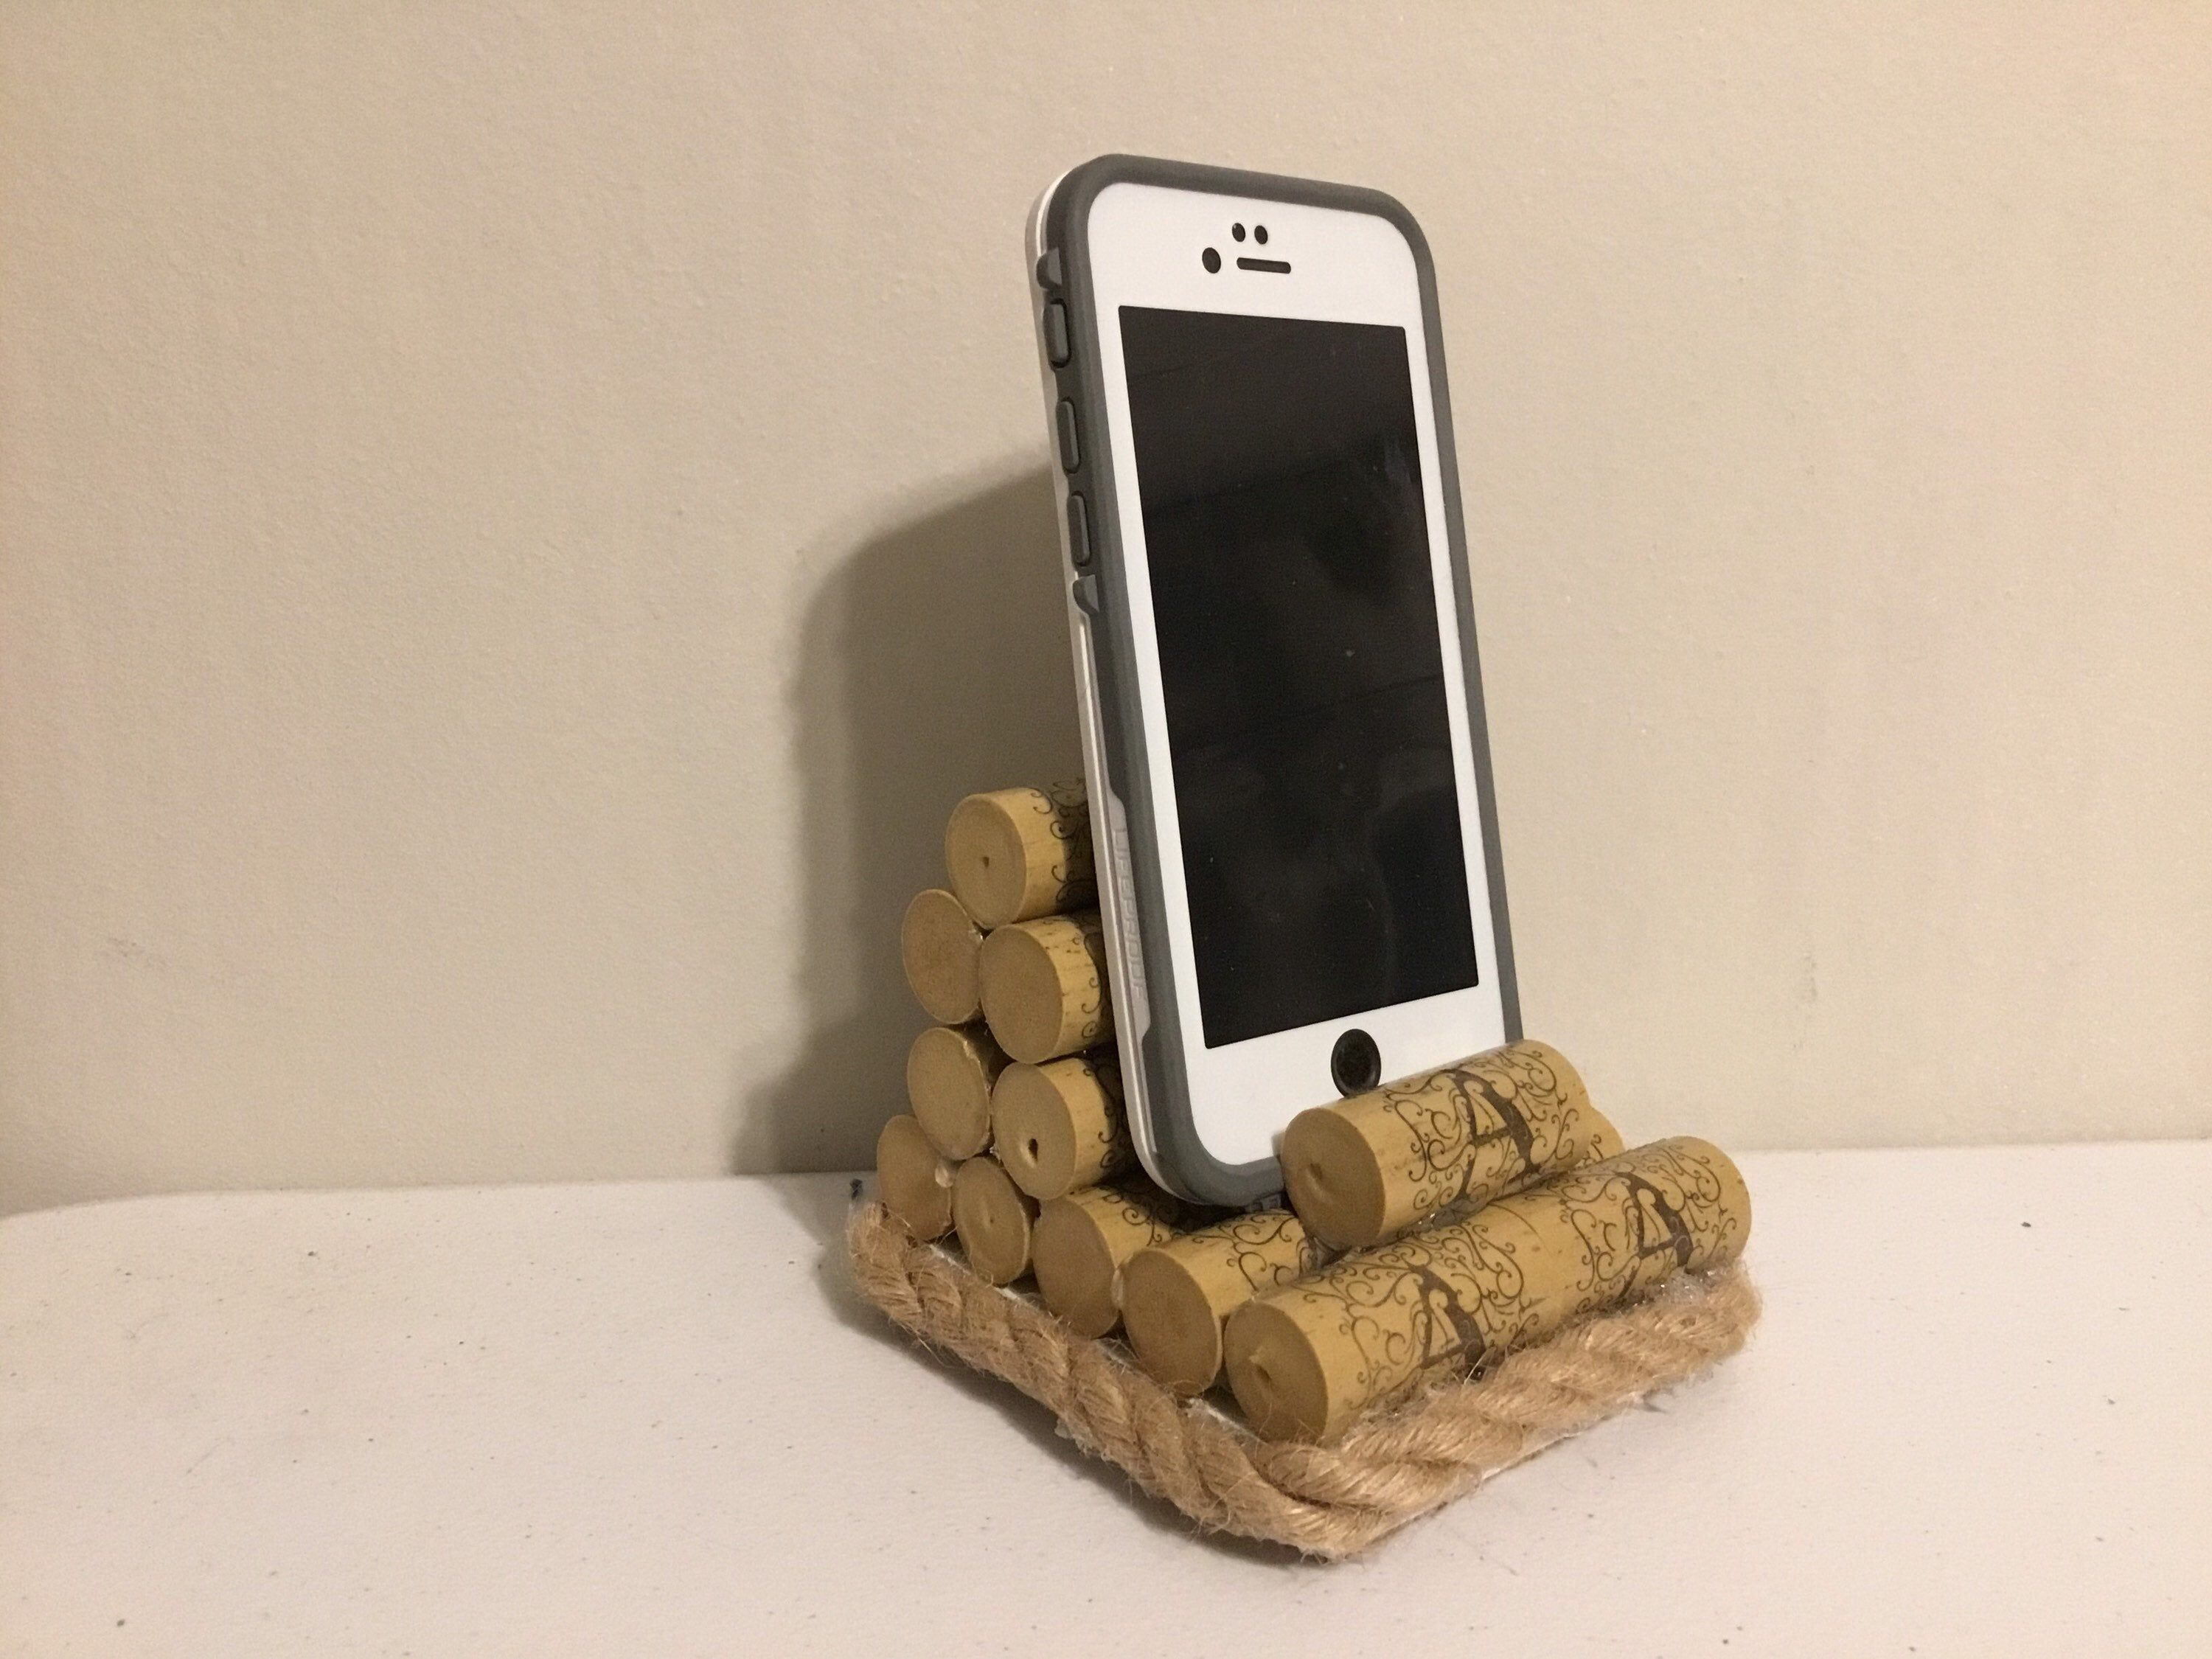 Phone and IPad stand made from corks